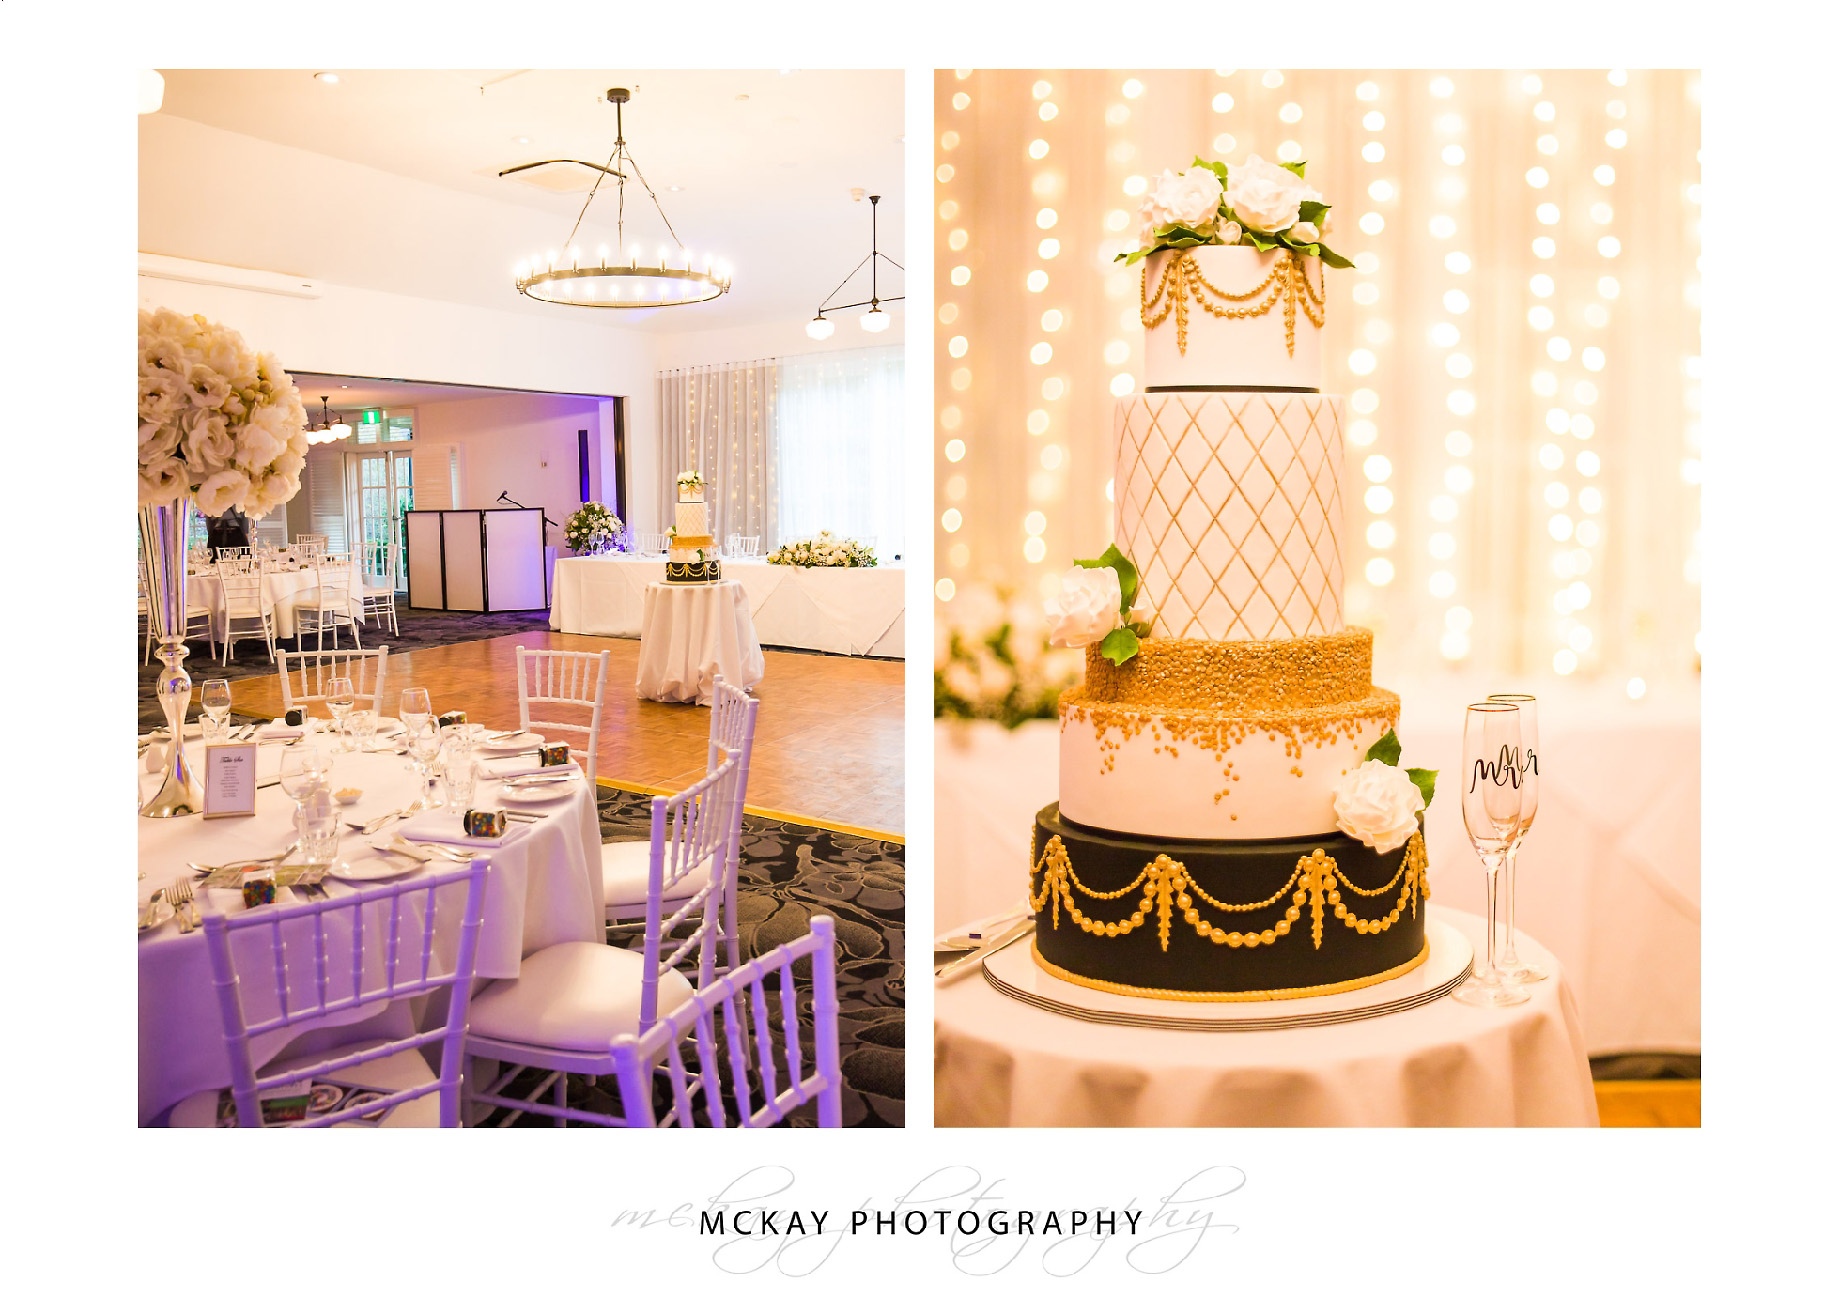 Wedding cake and room details